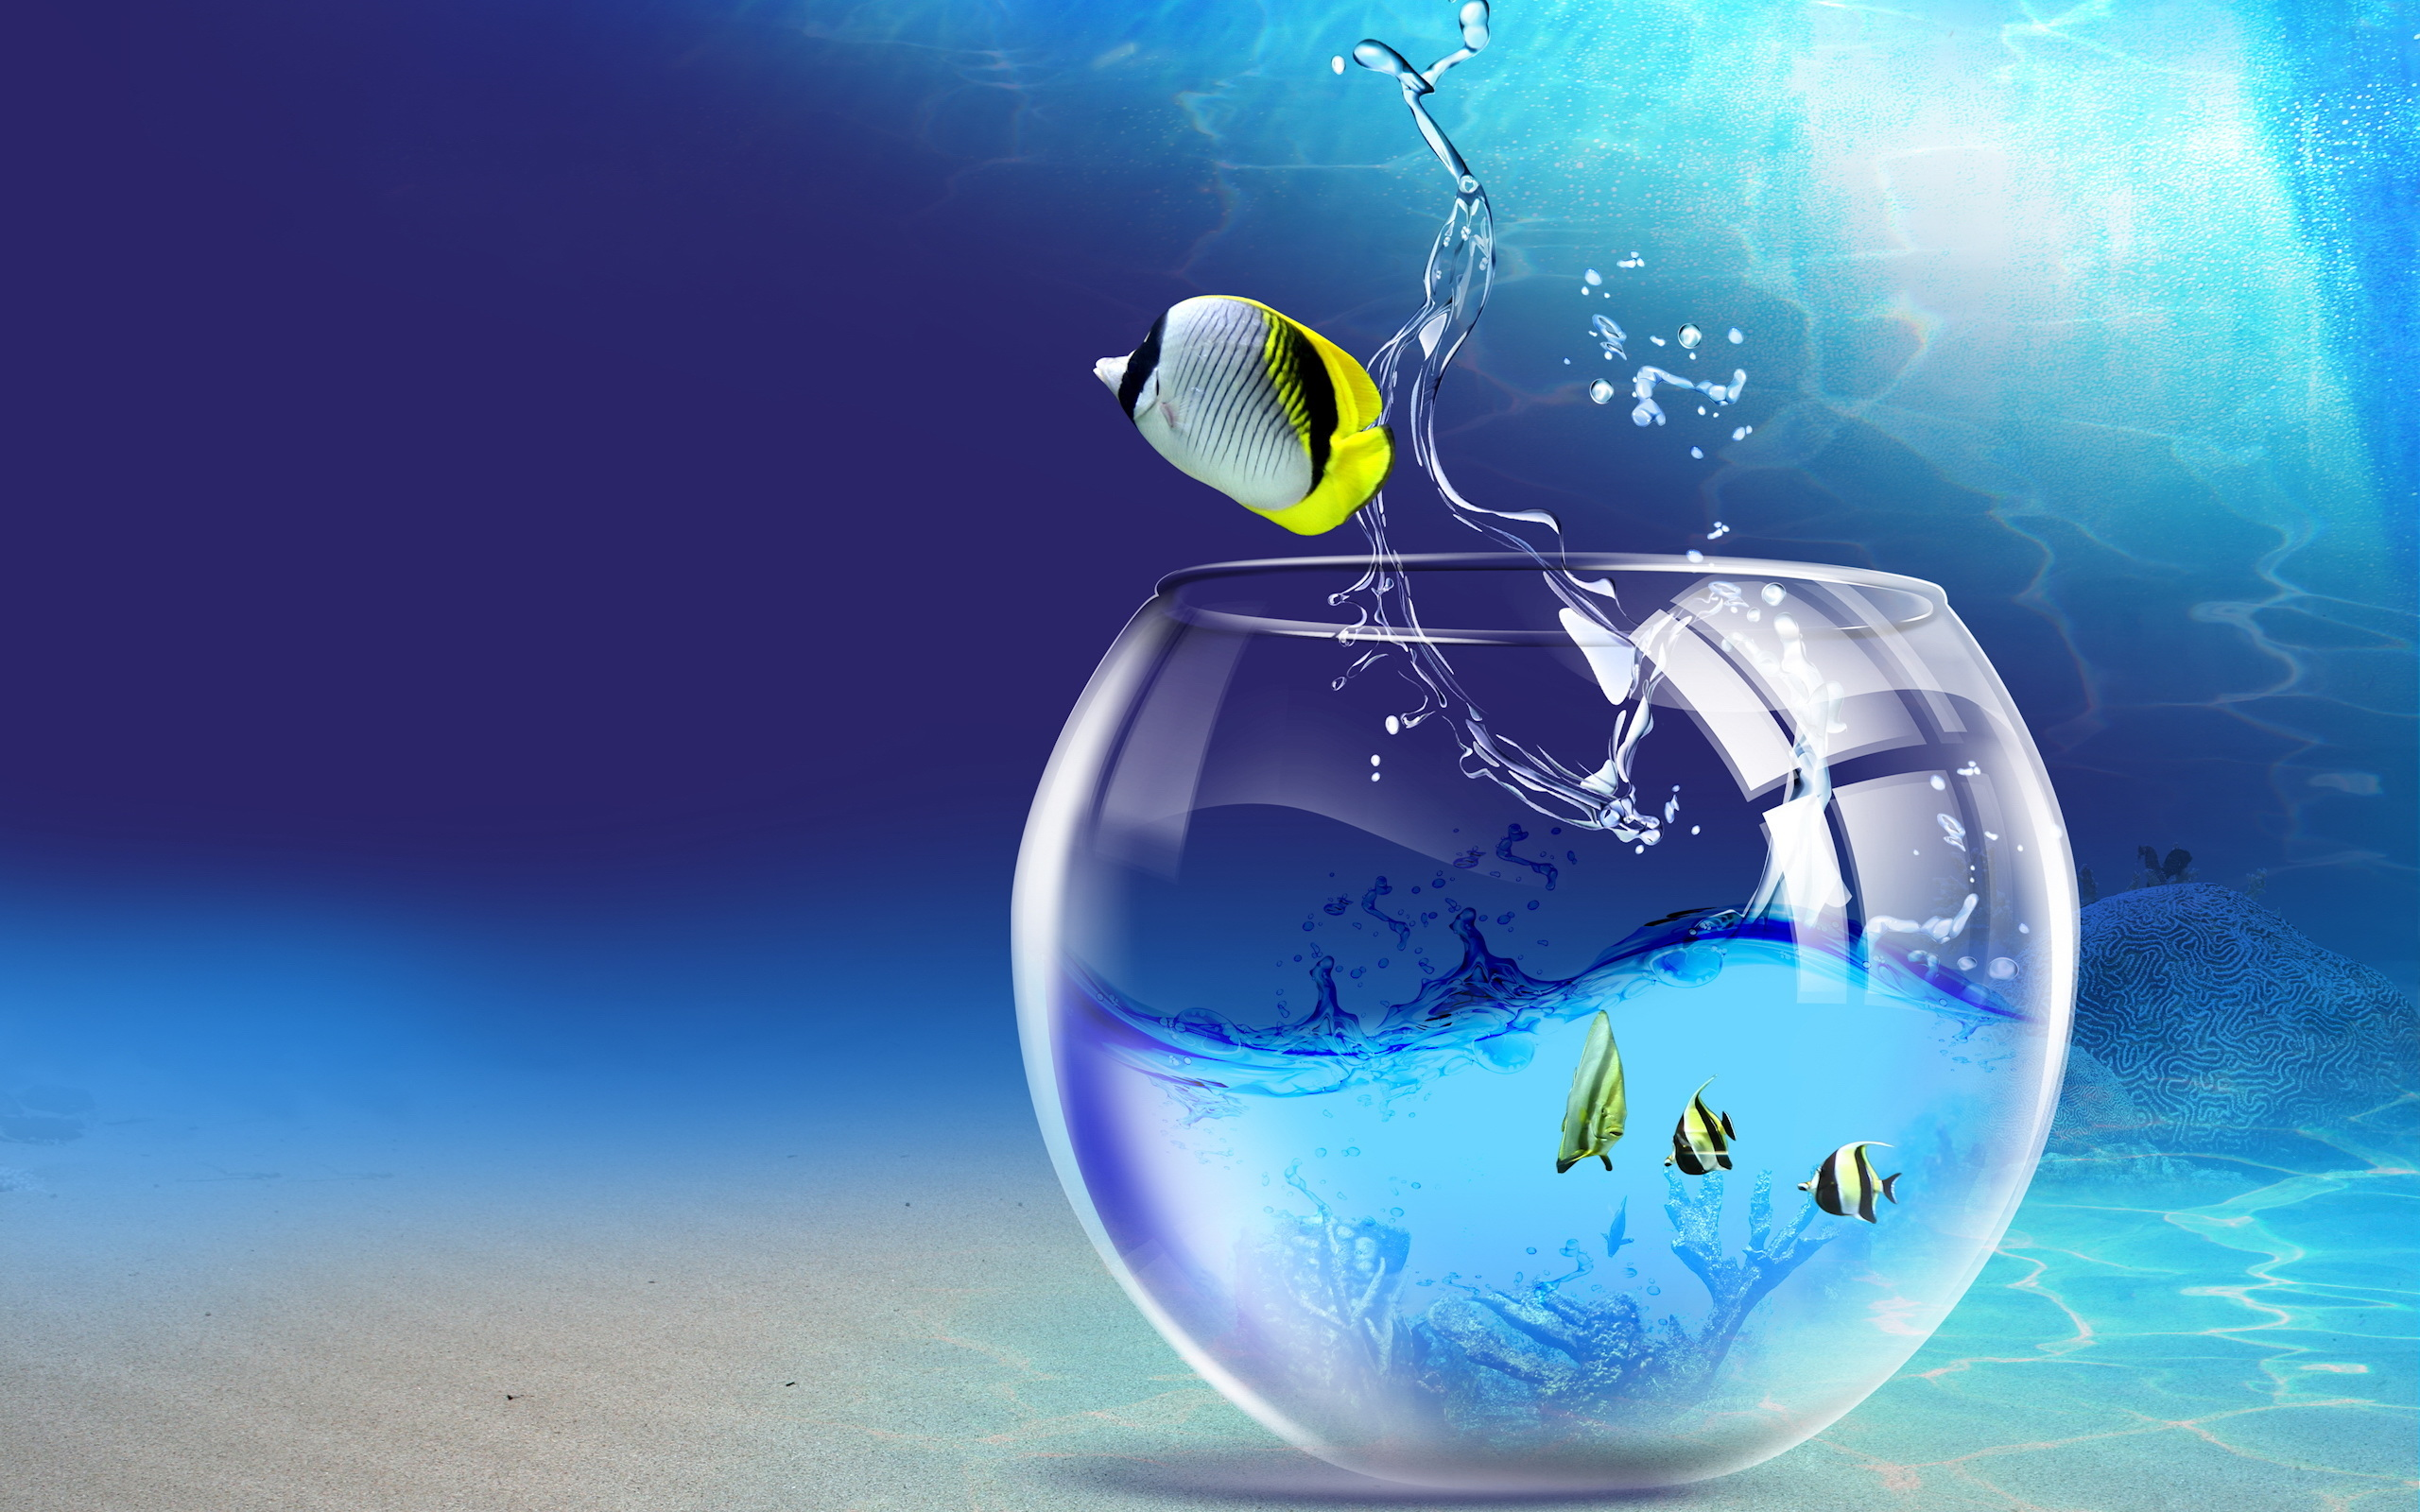 12414 download wallpaper Water, Fantasy, Art, Aquariums, Fishes screensavers and pictures for free